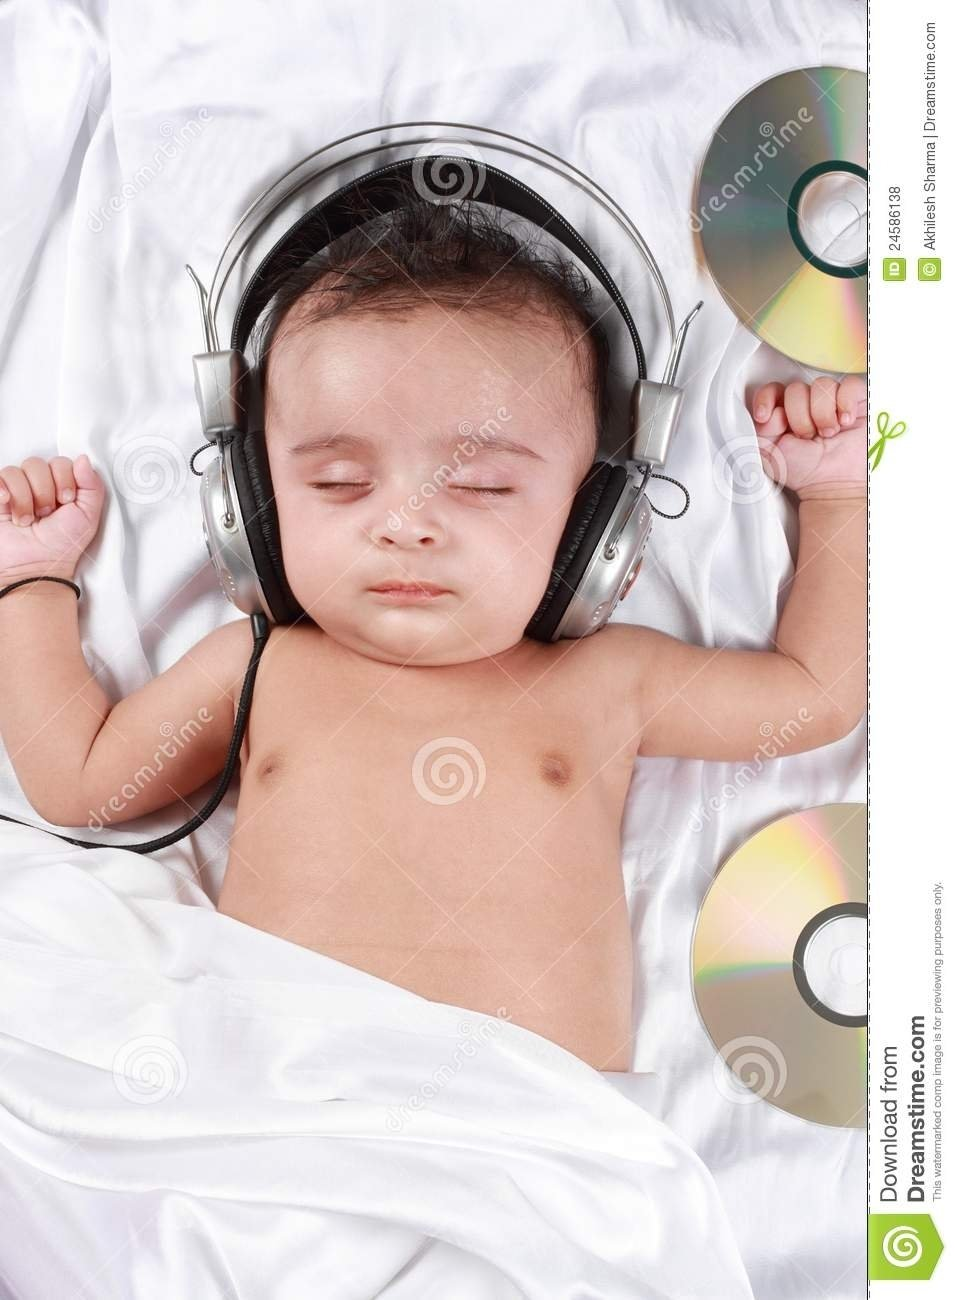 2 month old baby listening to music stock photo - image of indian